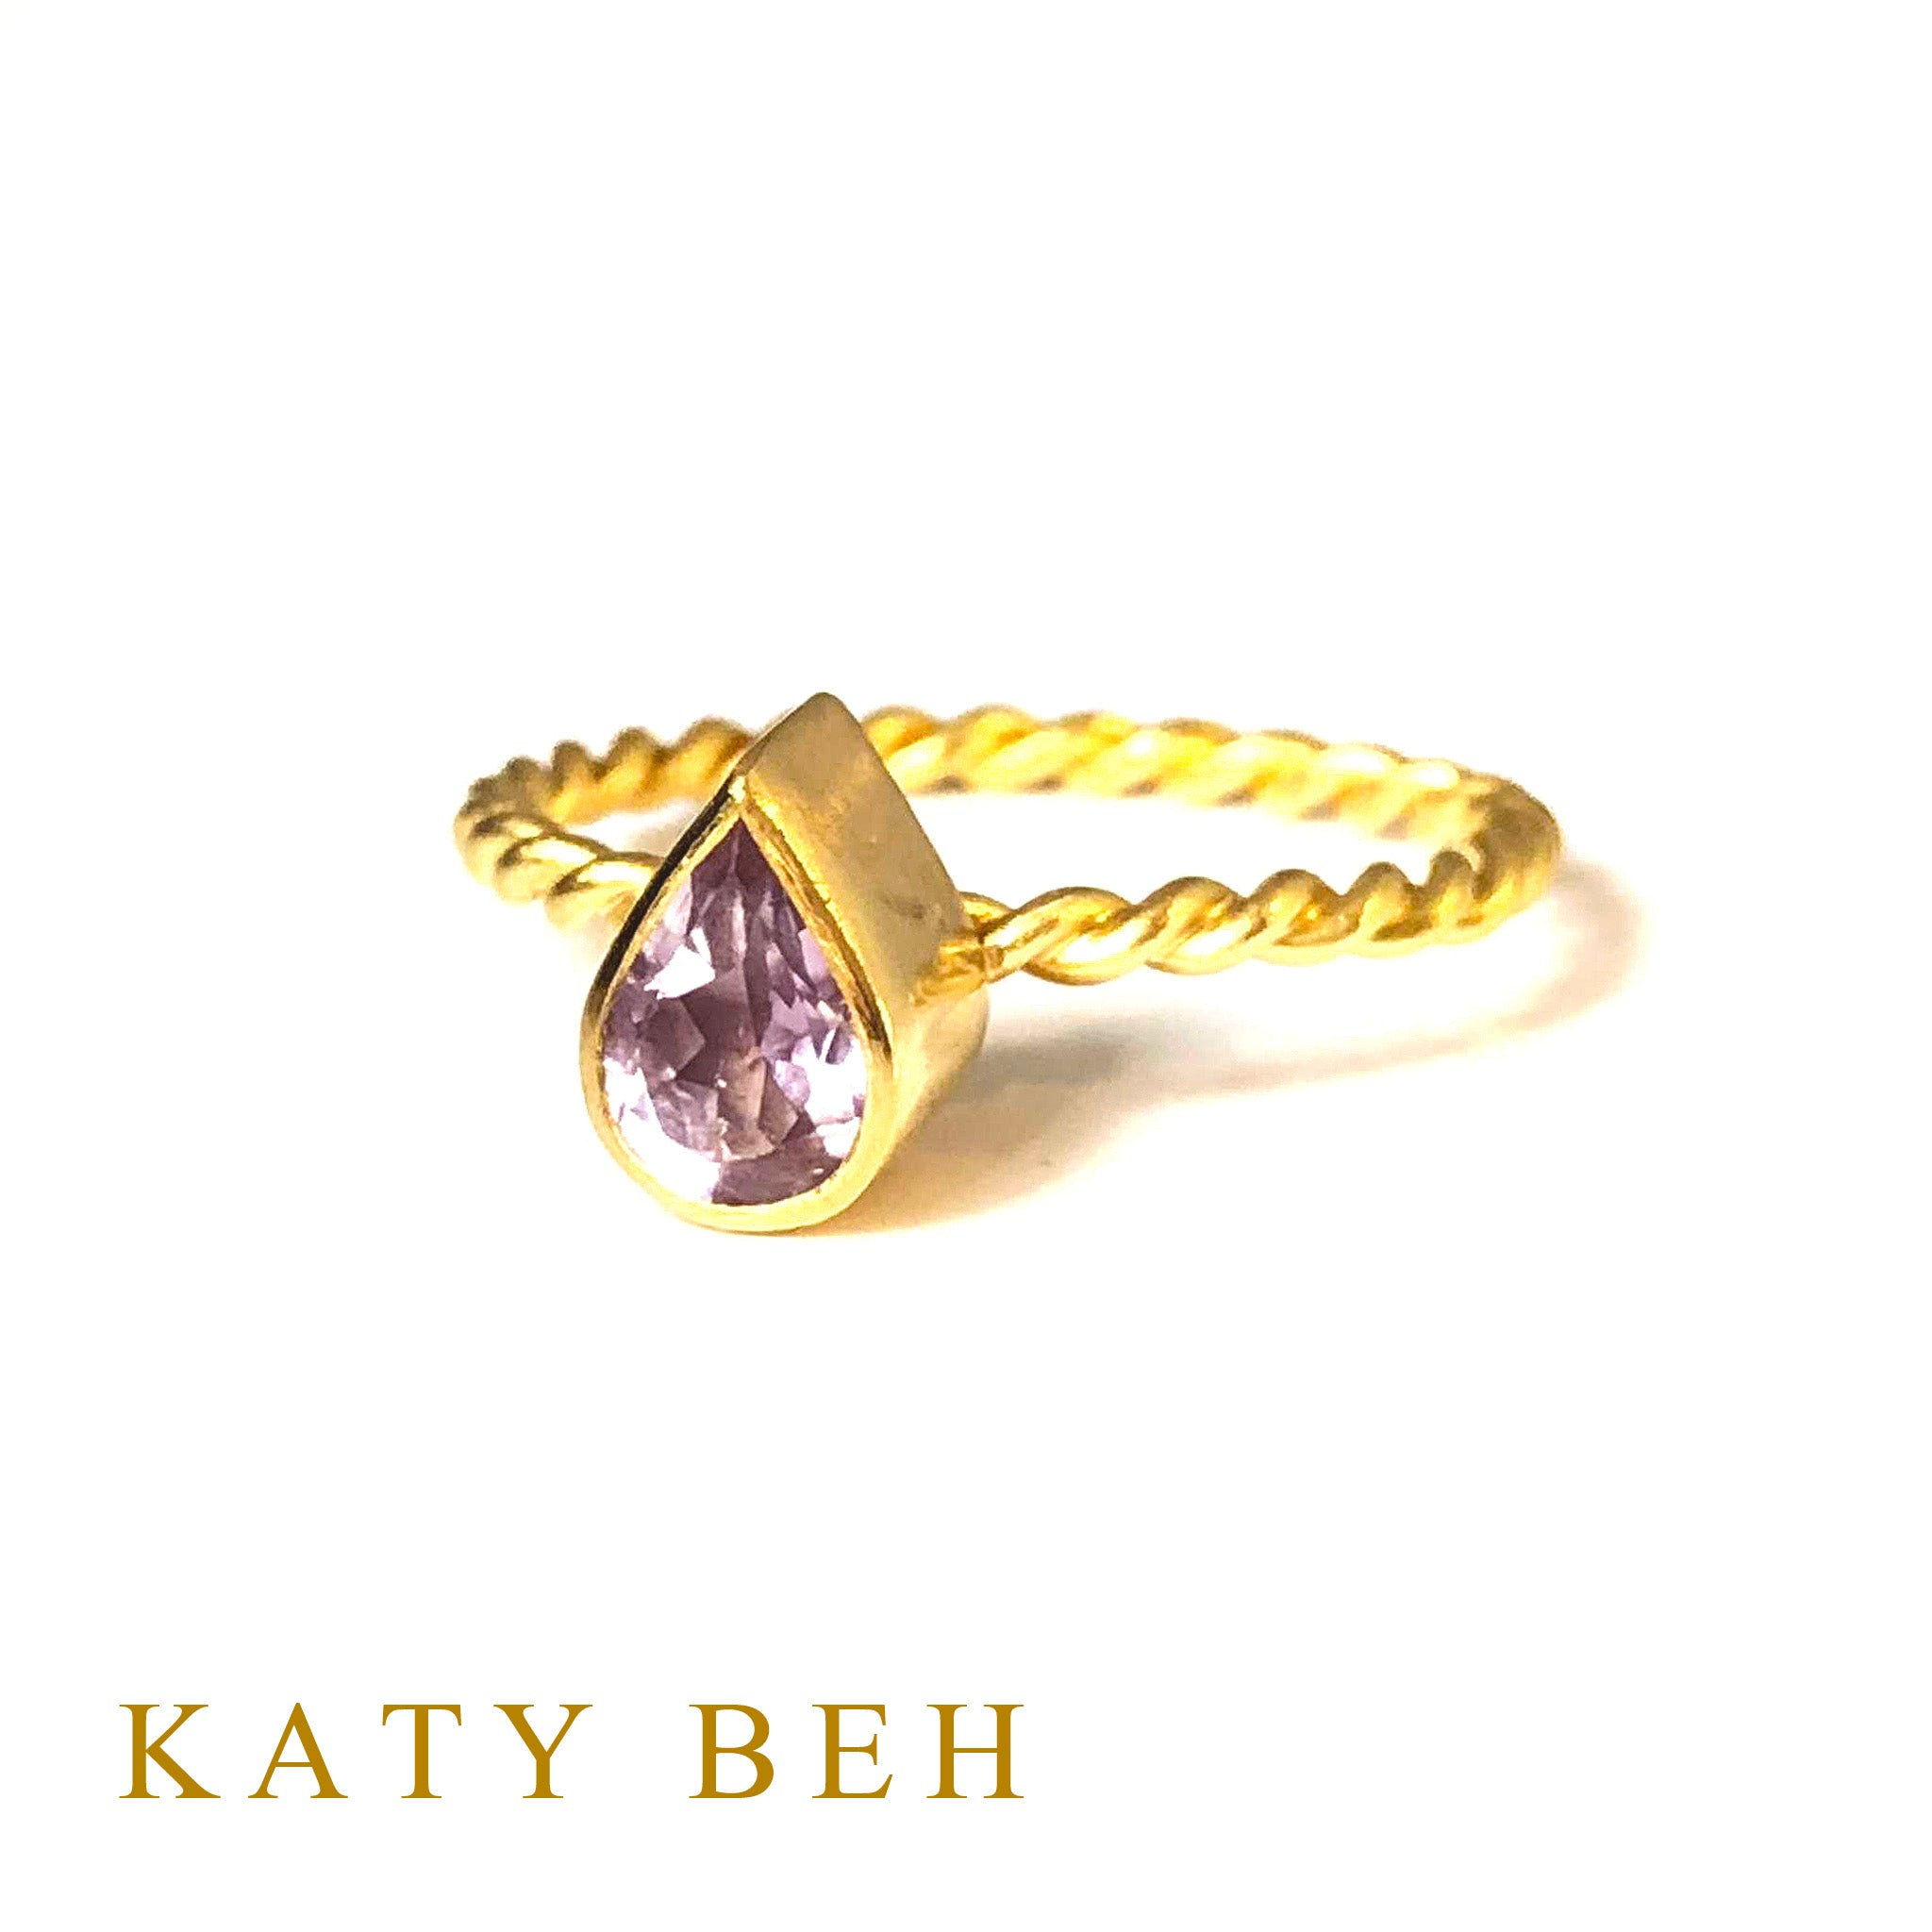 Sperry Amethyst Ring